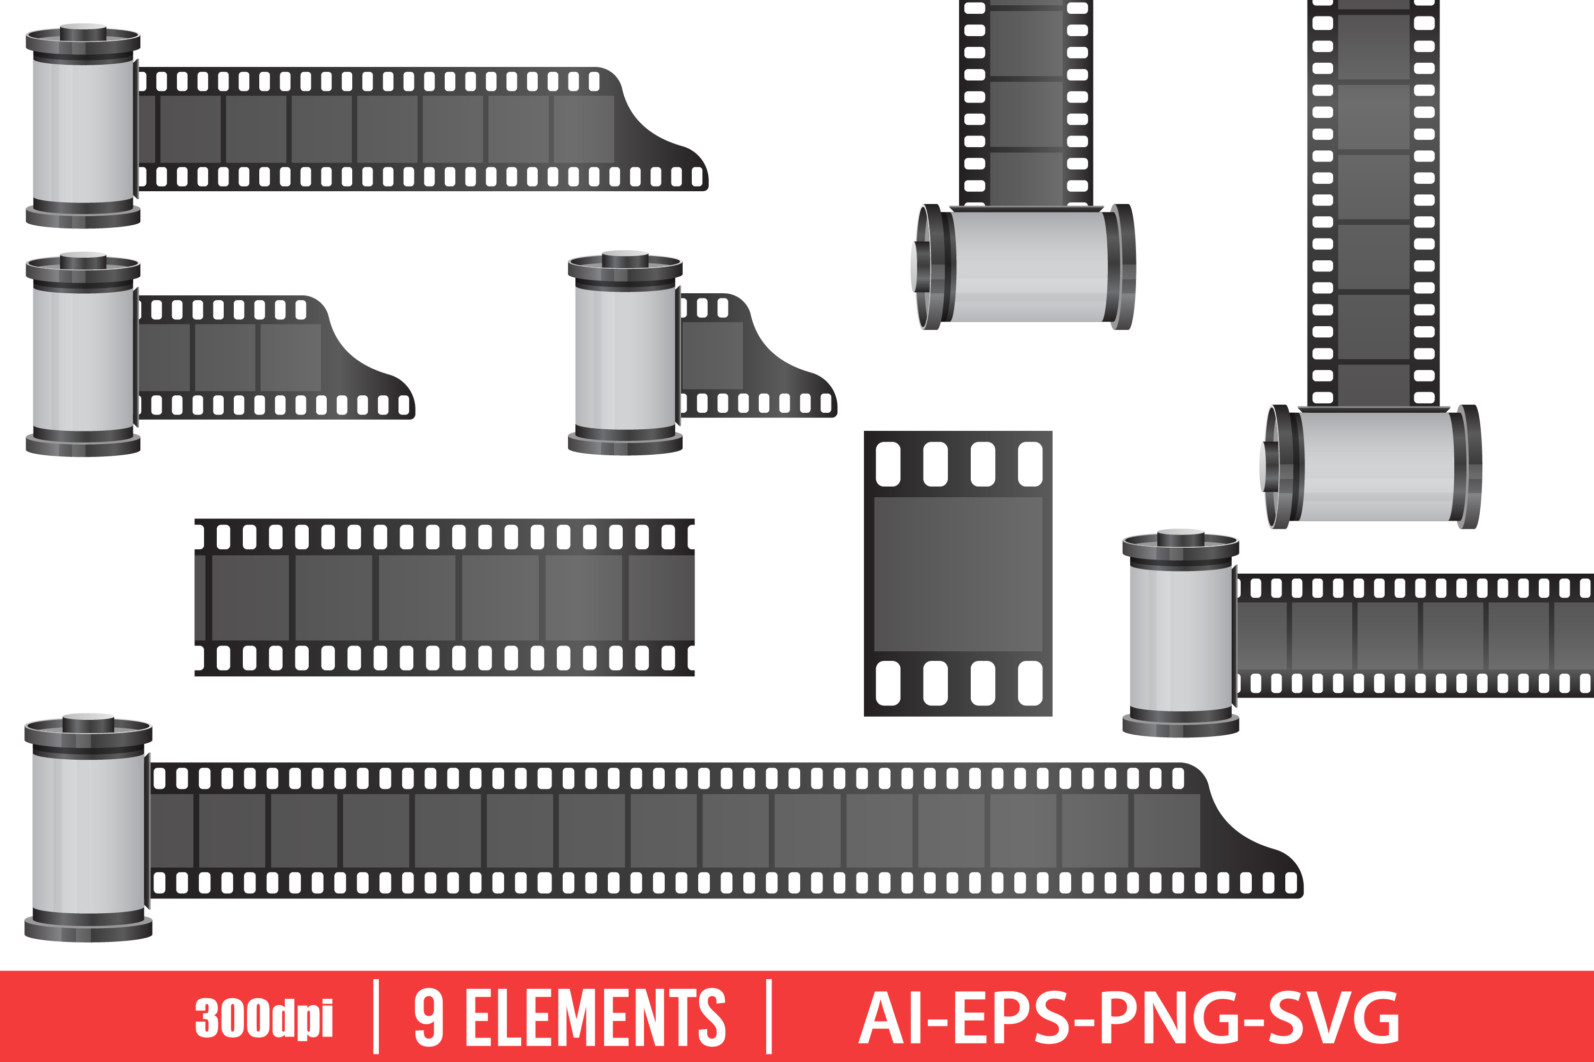 Camera film roll clipart vector design illustration. Camera film roll set. Vector Clipart Print - FILM ROLL scaled -